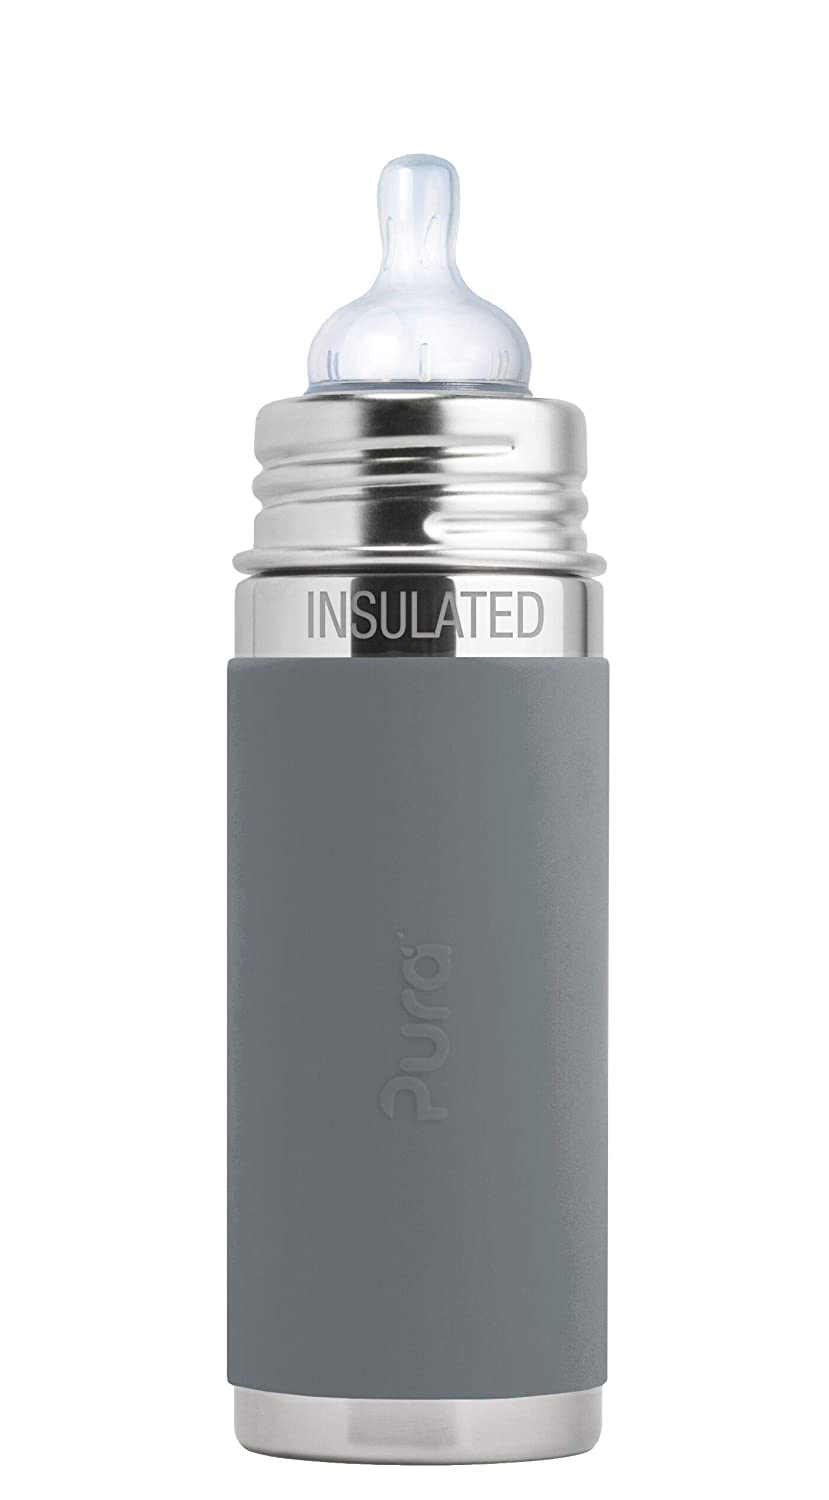 Pura Kiki 9 oz / 260 ml Stainless Steel Insulated Anti-Colic Infant Bottle with Silicone Medium-Flow Nipple & Sleeve (Plastic Free, NonToxic Certified, BPA Free) (Slate)